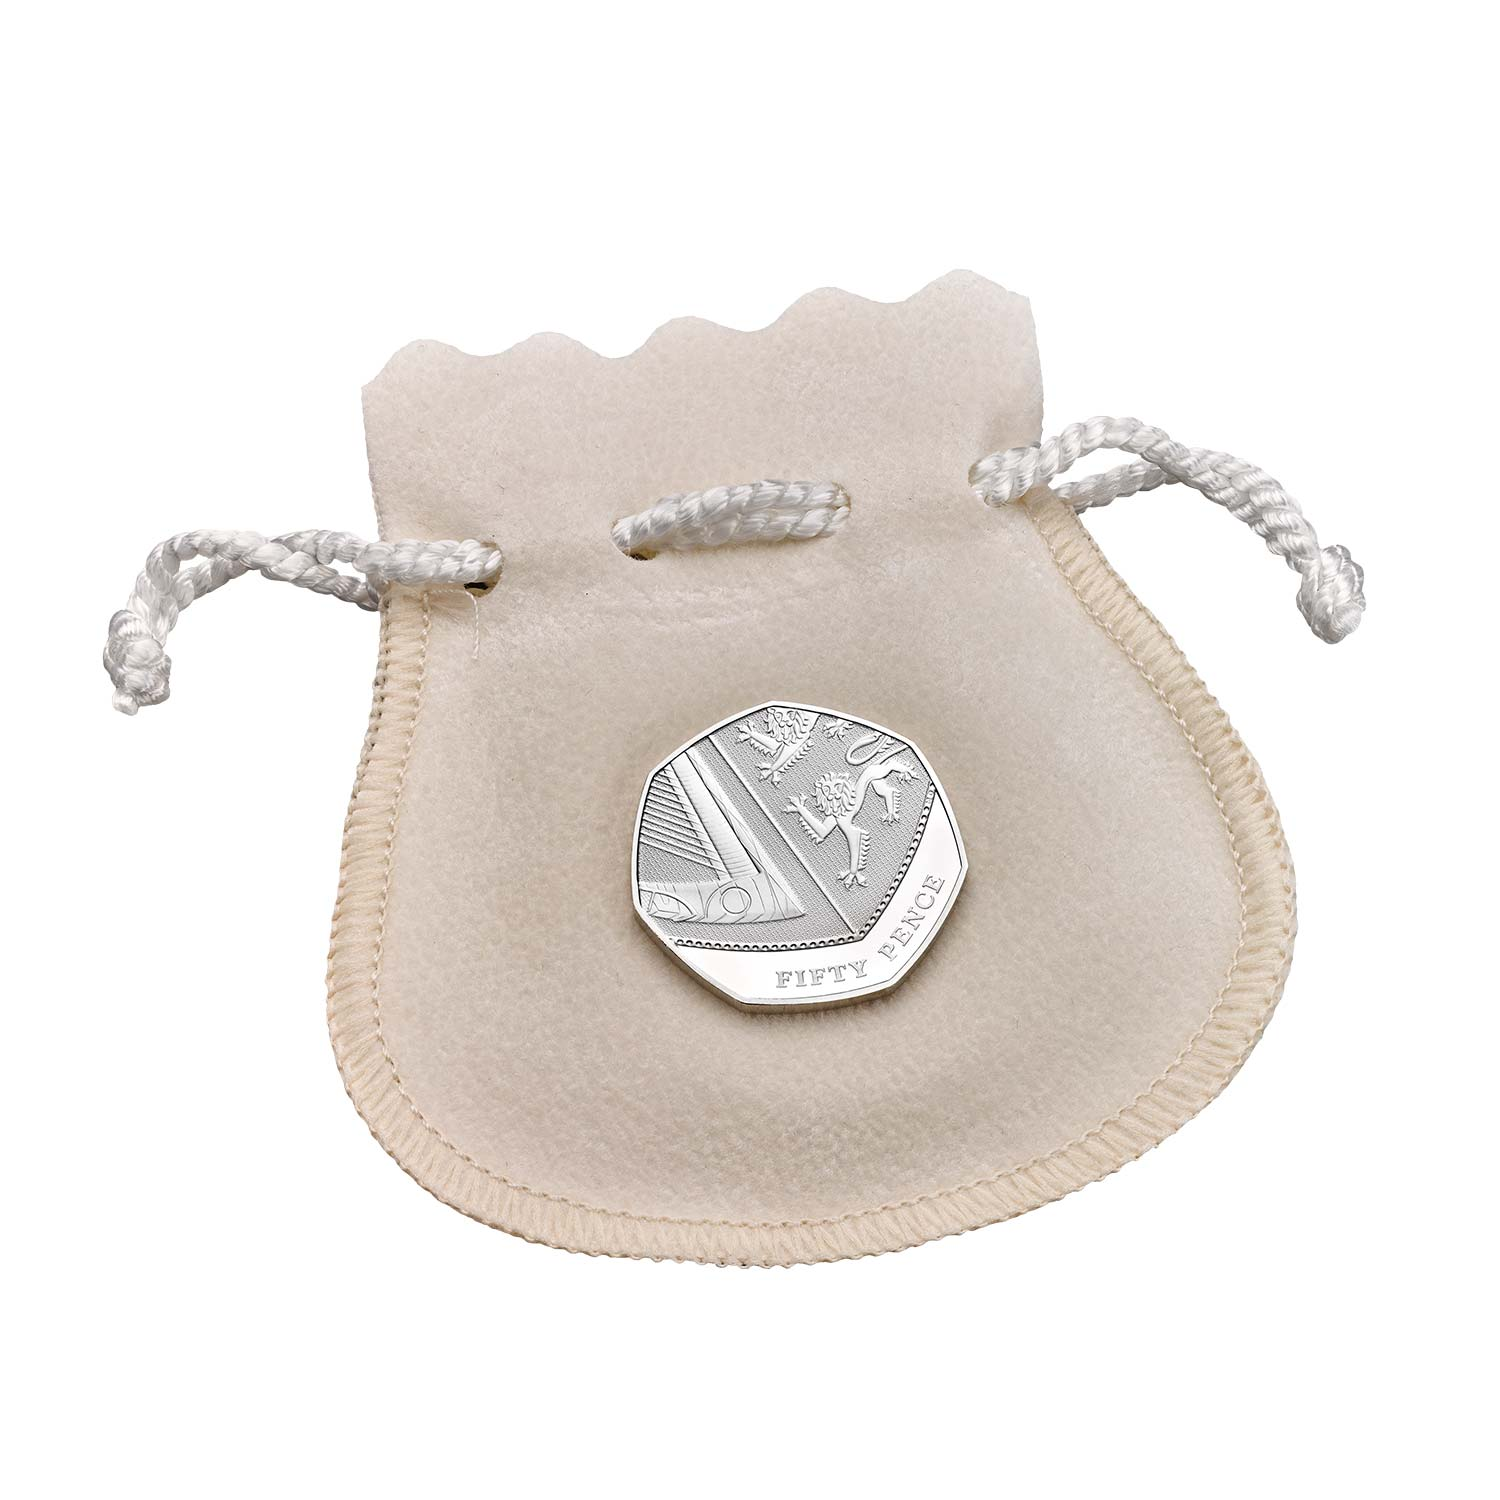 The Tooth Fairy Coin